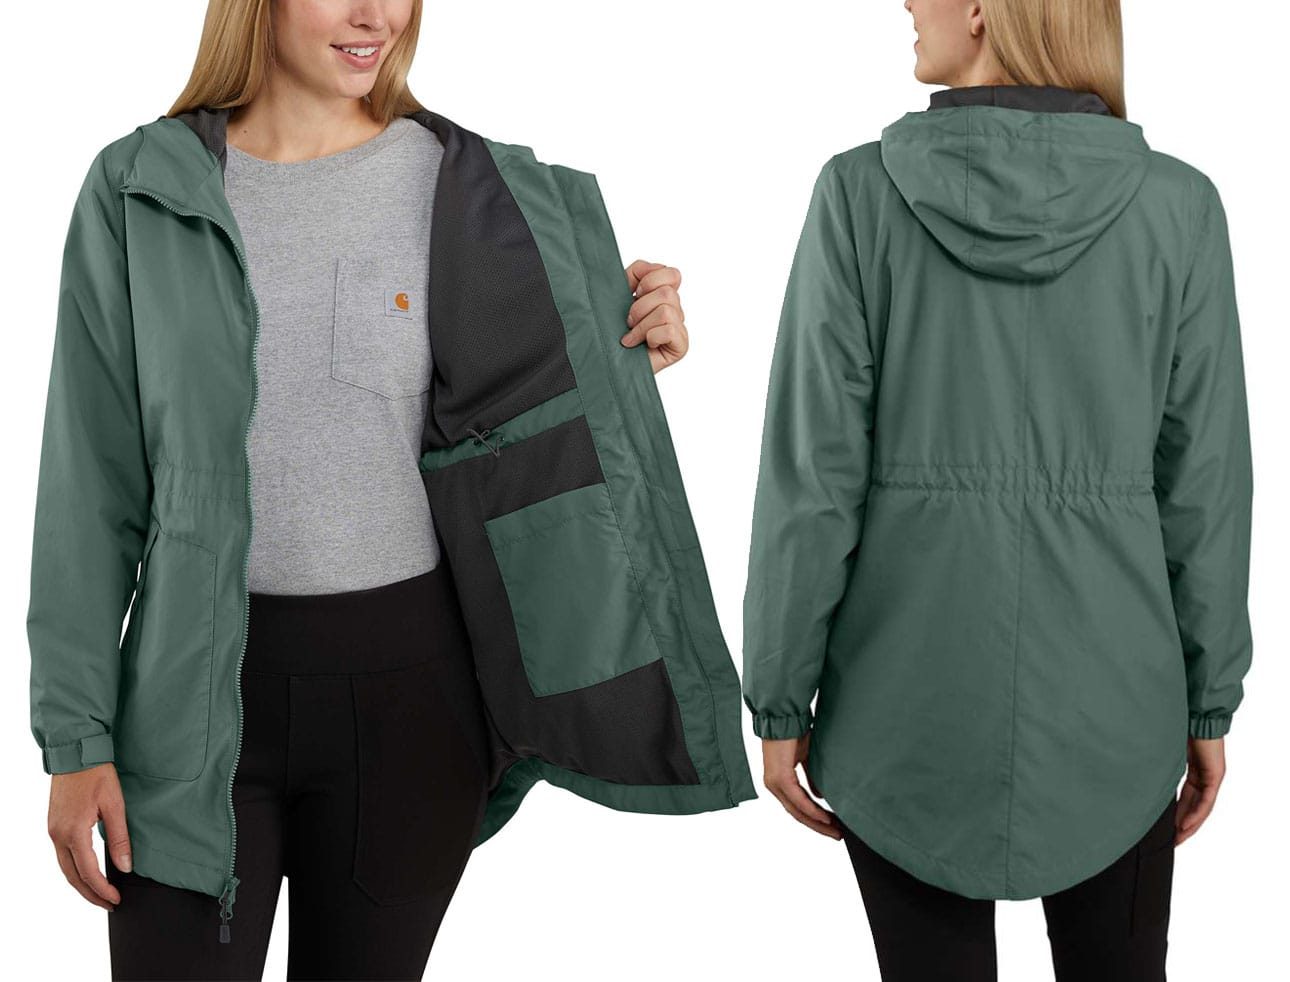 This lightweight rain jacket weighs in at only two ounces and can easily be stashed into your bag